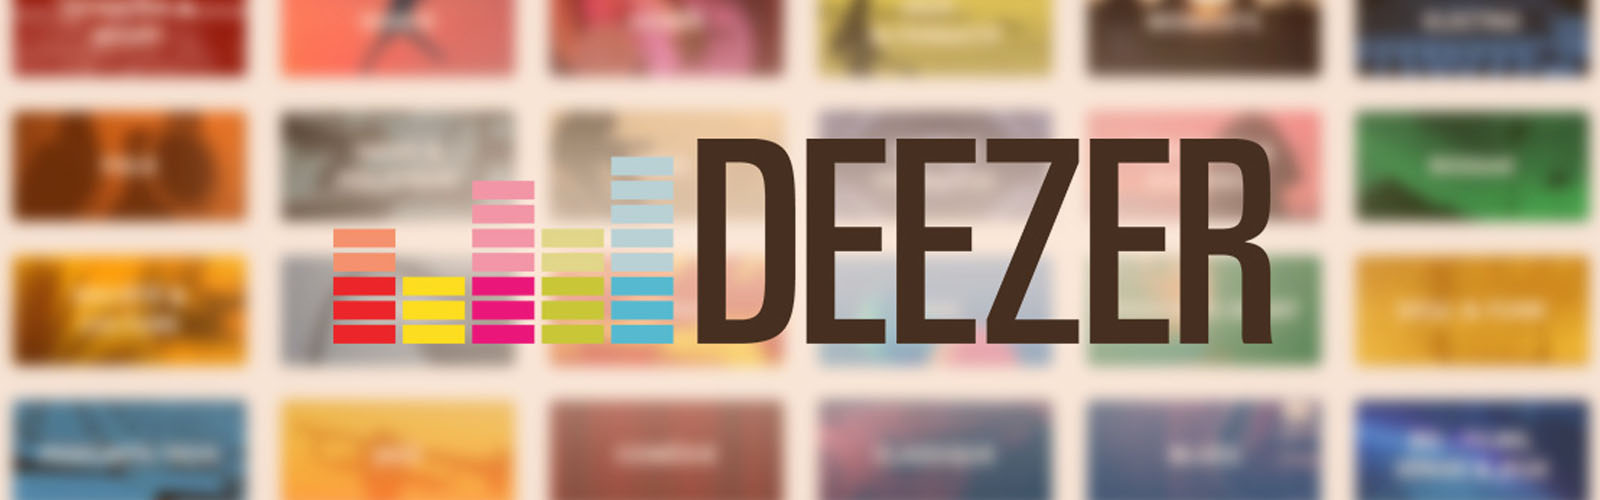 Deezer playlists – the new competition for musicians